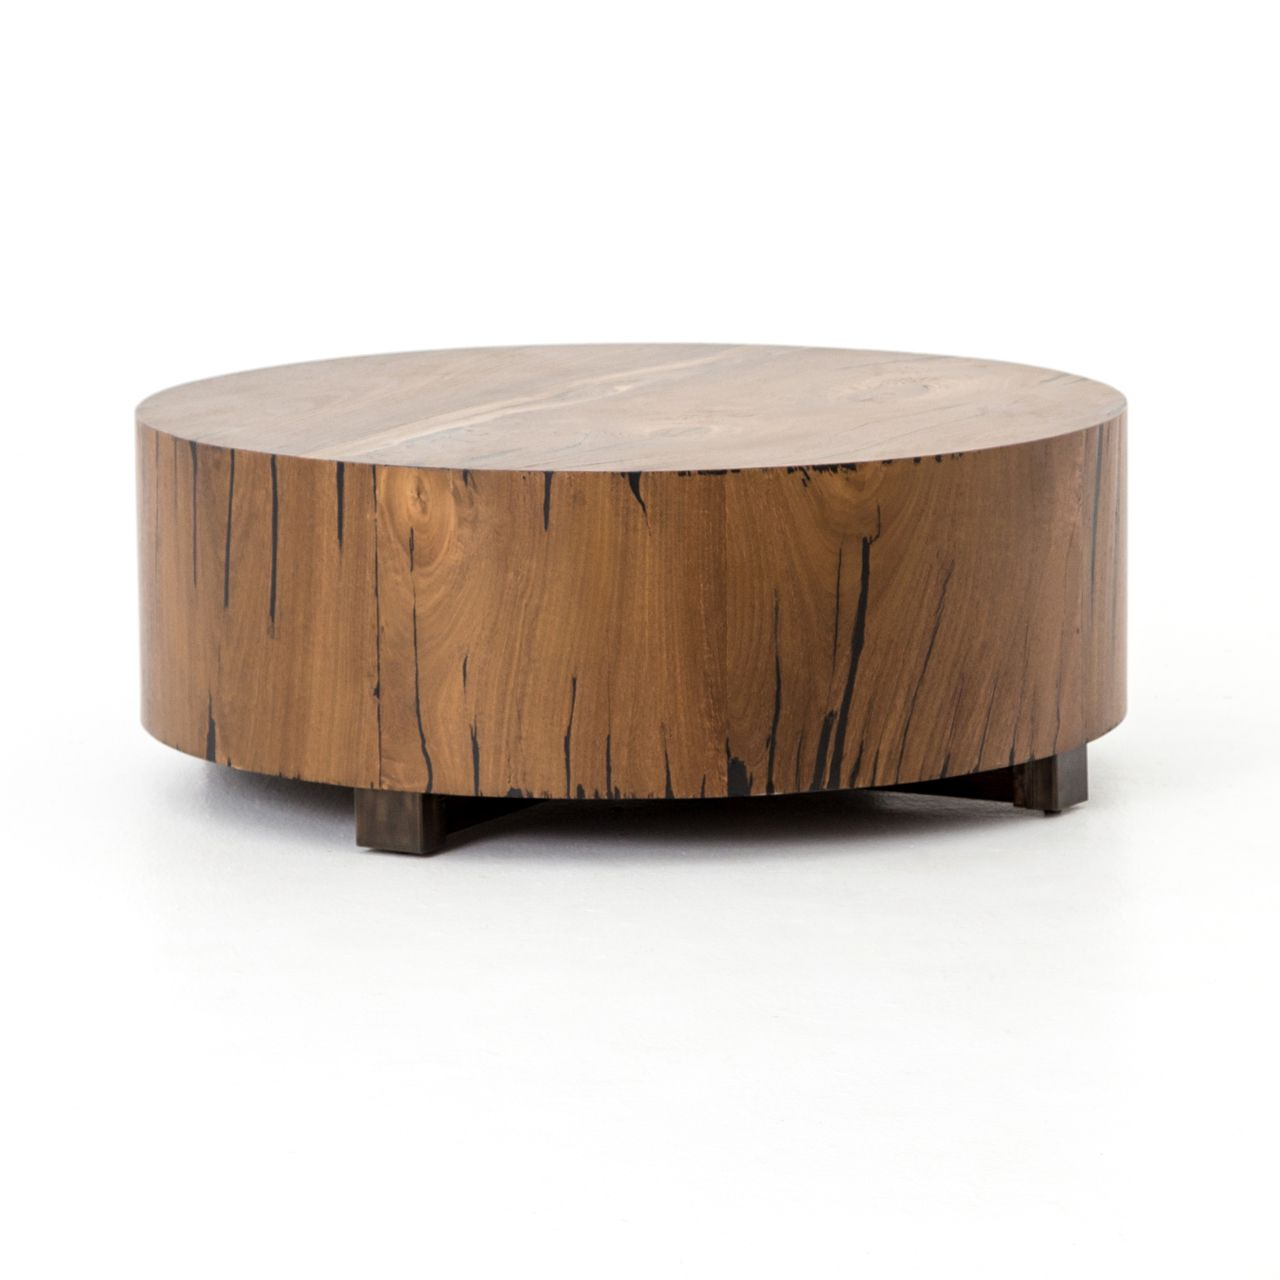 Hudson Natural Coffee Table Round Wood Coffee Table Coffee